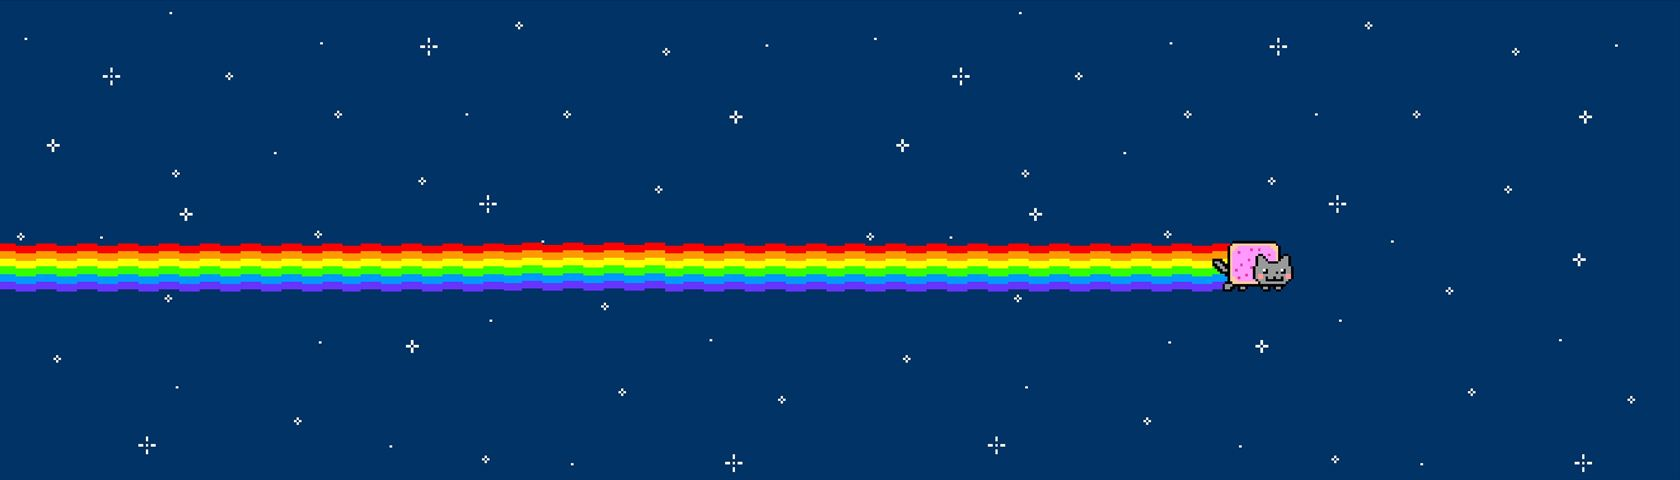 Cat 2048 Nyan Cat In Space Images Wallpaperfusion By Binary Fortress